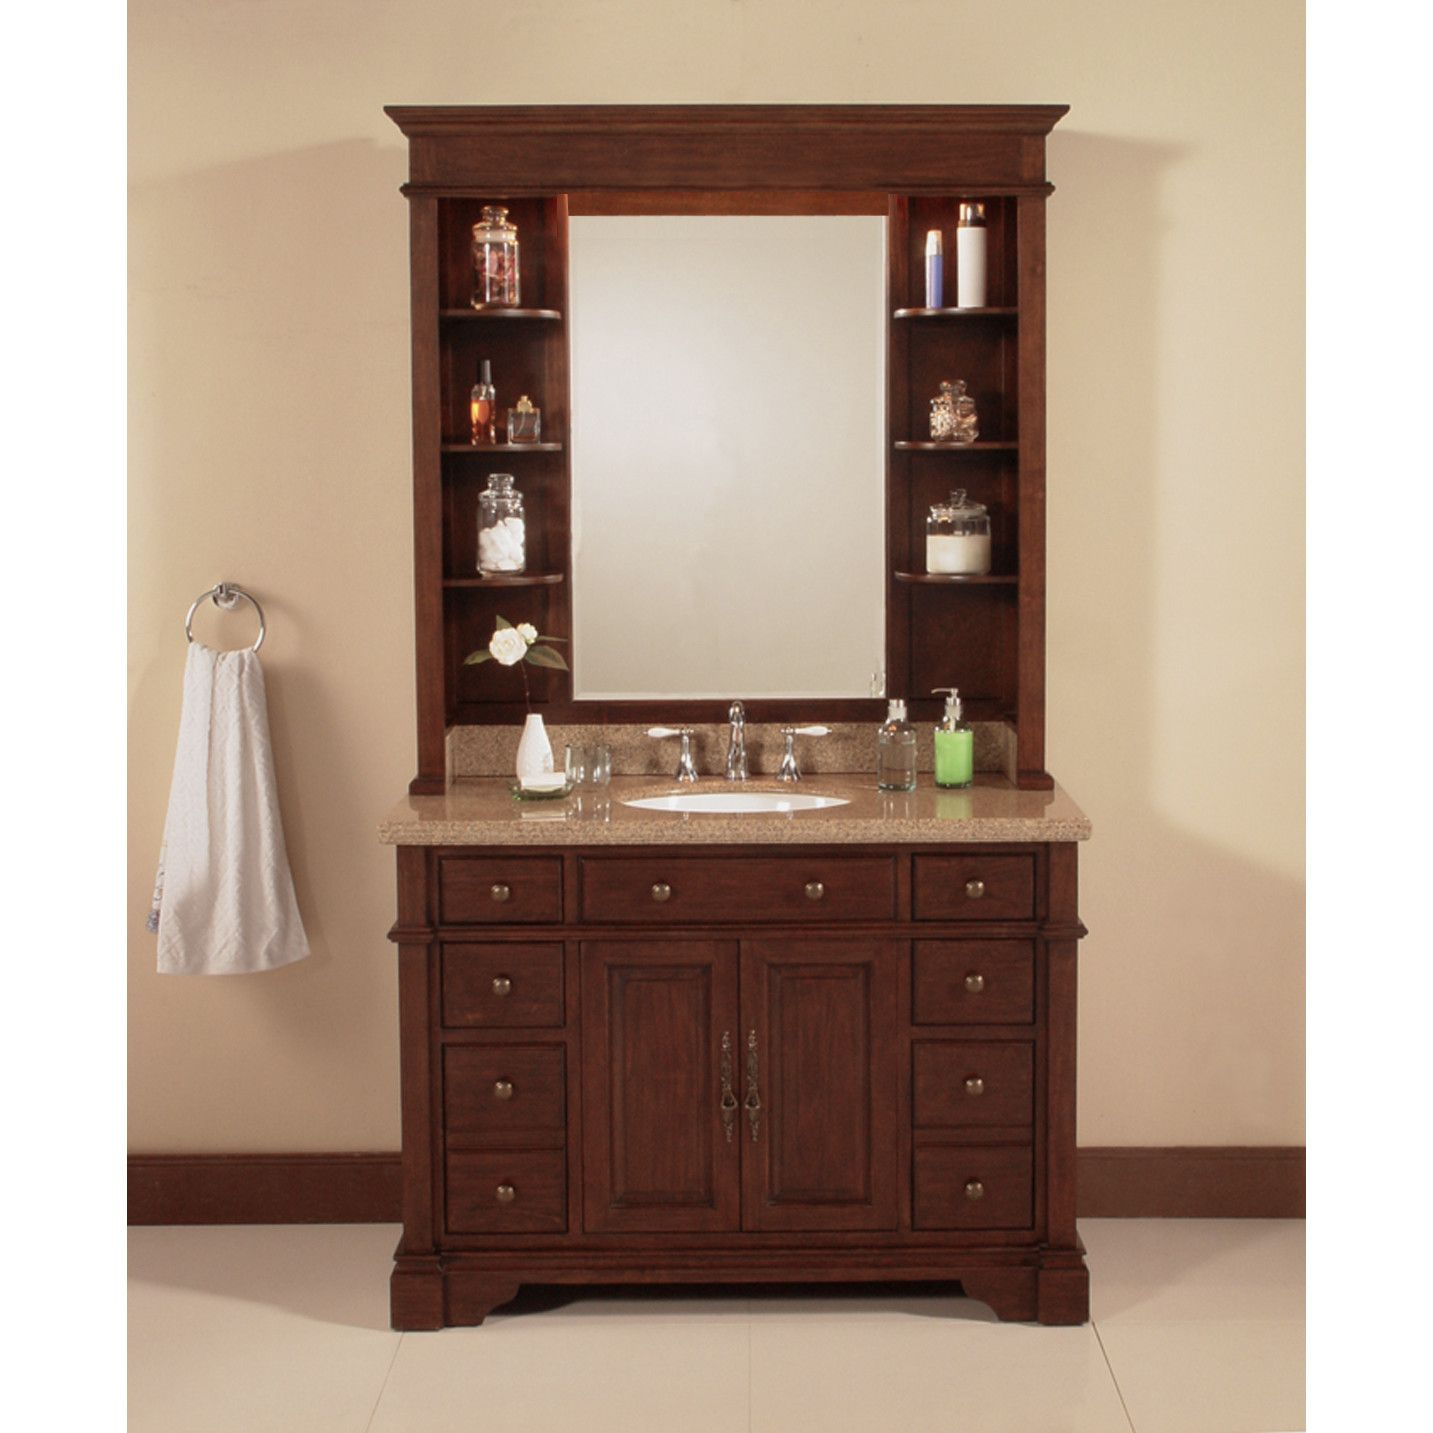 houzz set vanities abbey single fixtures wayfair ideas vanity wall with ja decor mirrors de canisters tops brooks clipgoo remodel spanish scales decorating in all remodeling bathroom